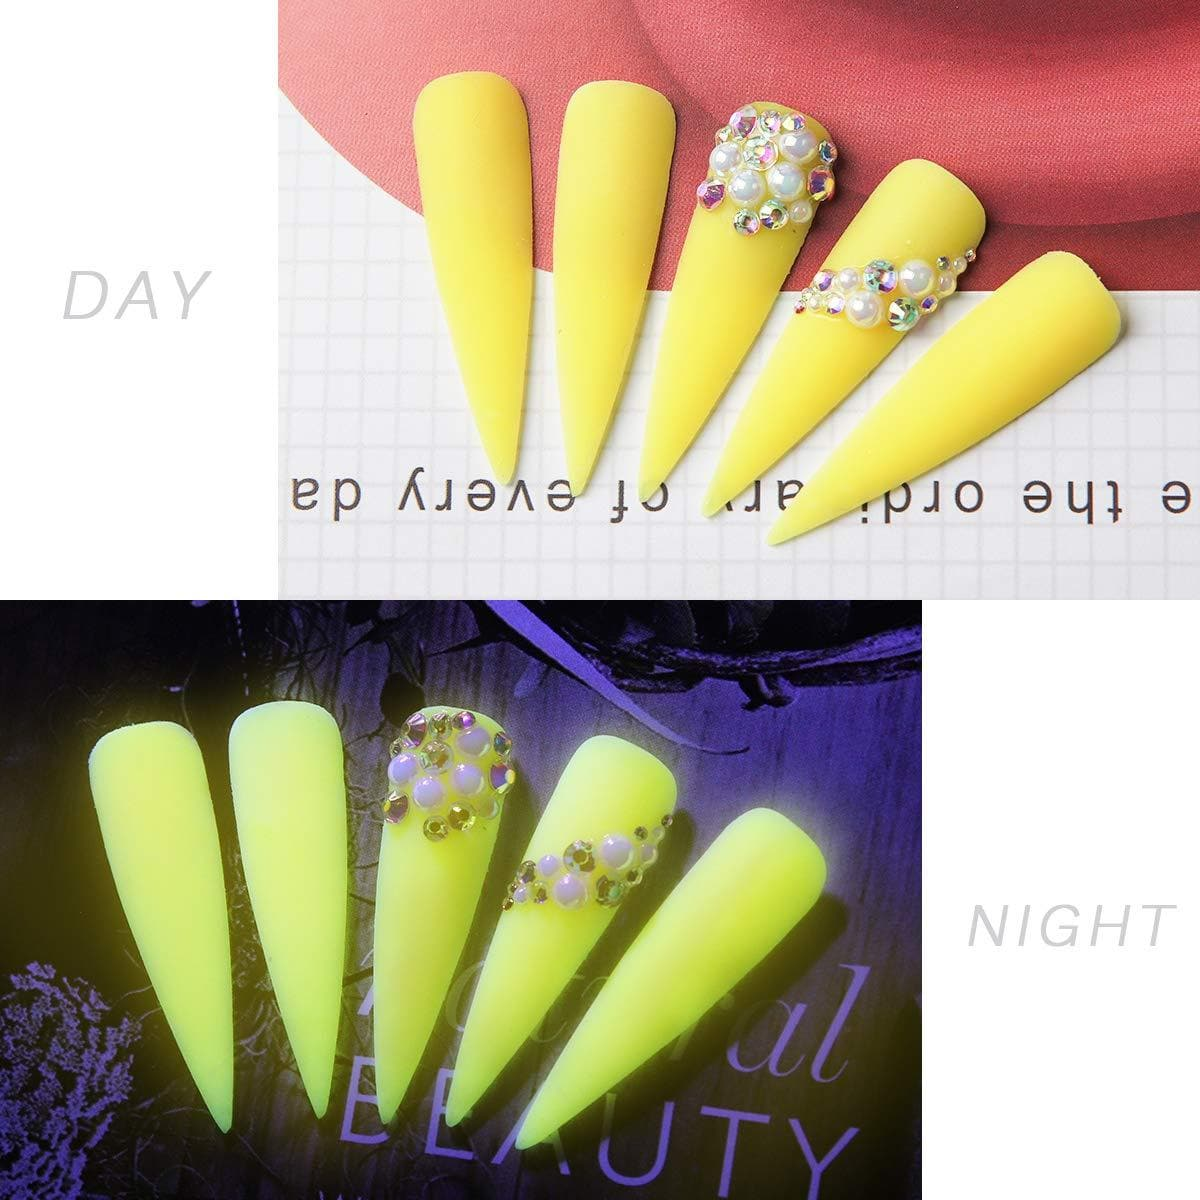 Glow-in-the-Dark Poly Gel Extension Kit - Makartt